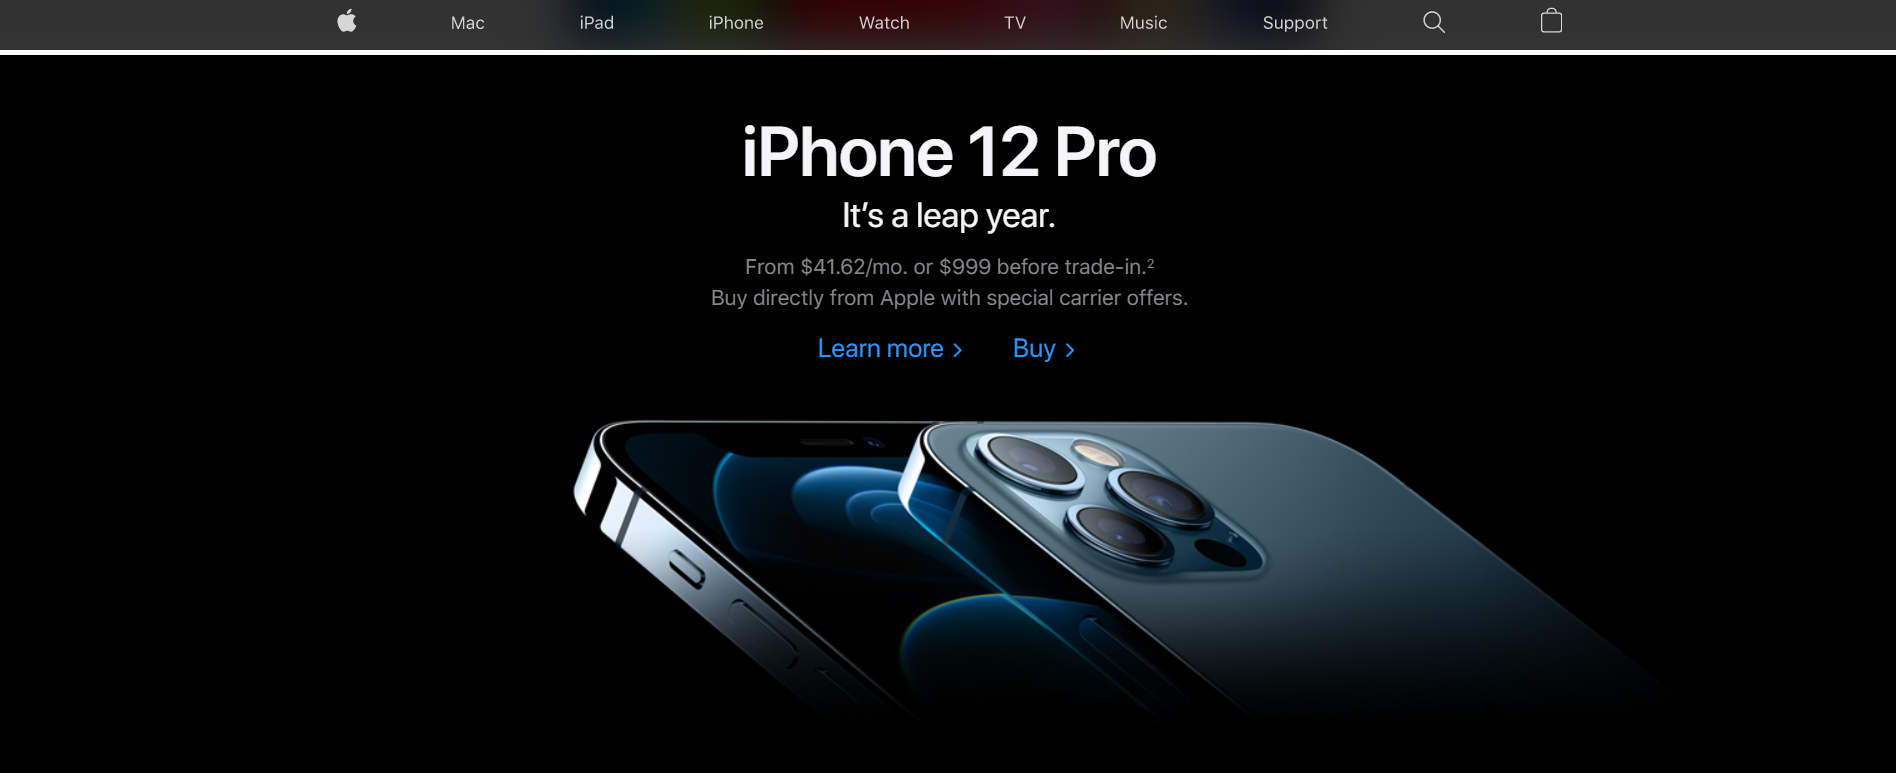 Top Web Design Trends to Look Out For in 2021 Apple